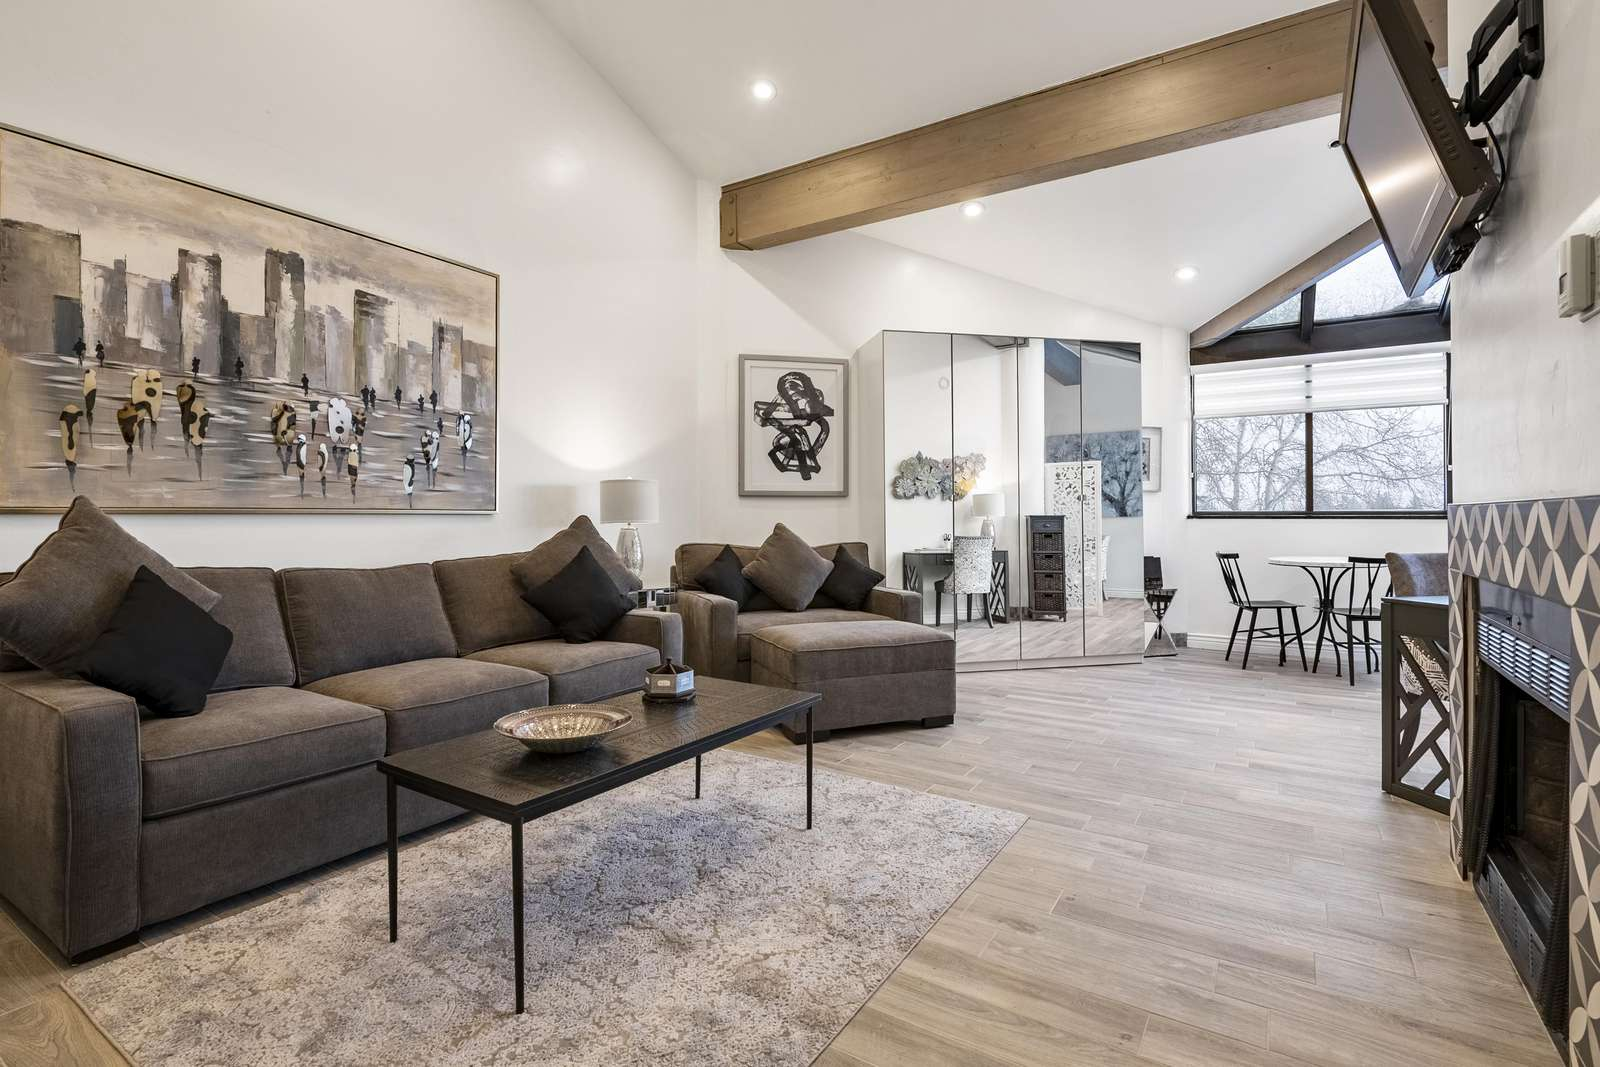 Spacious and light living room